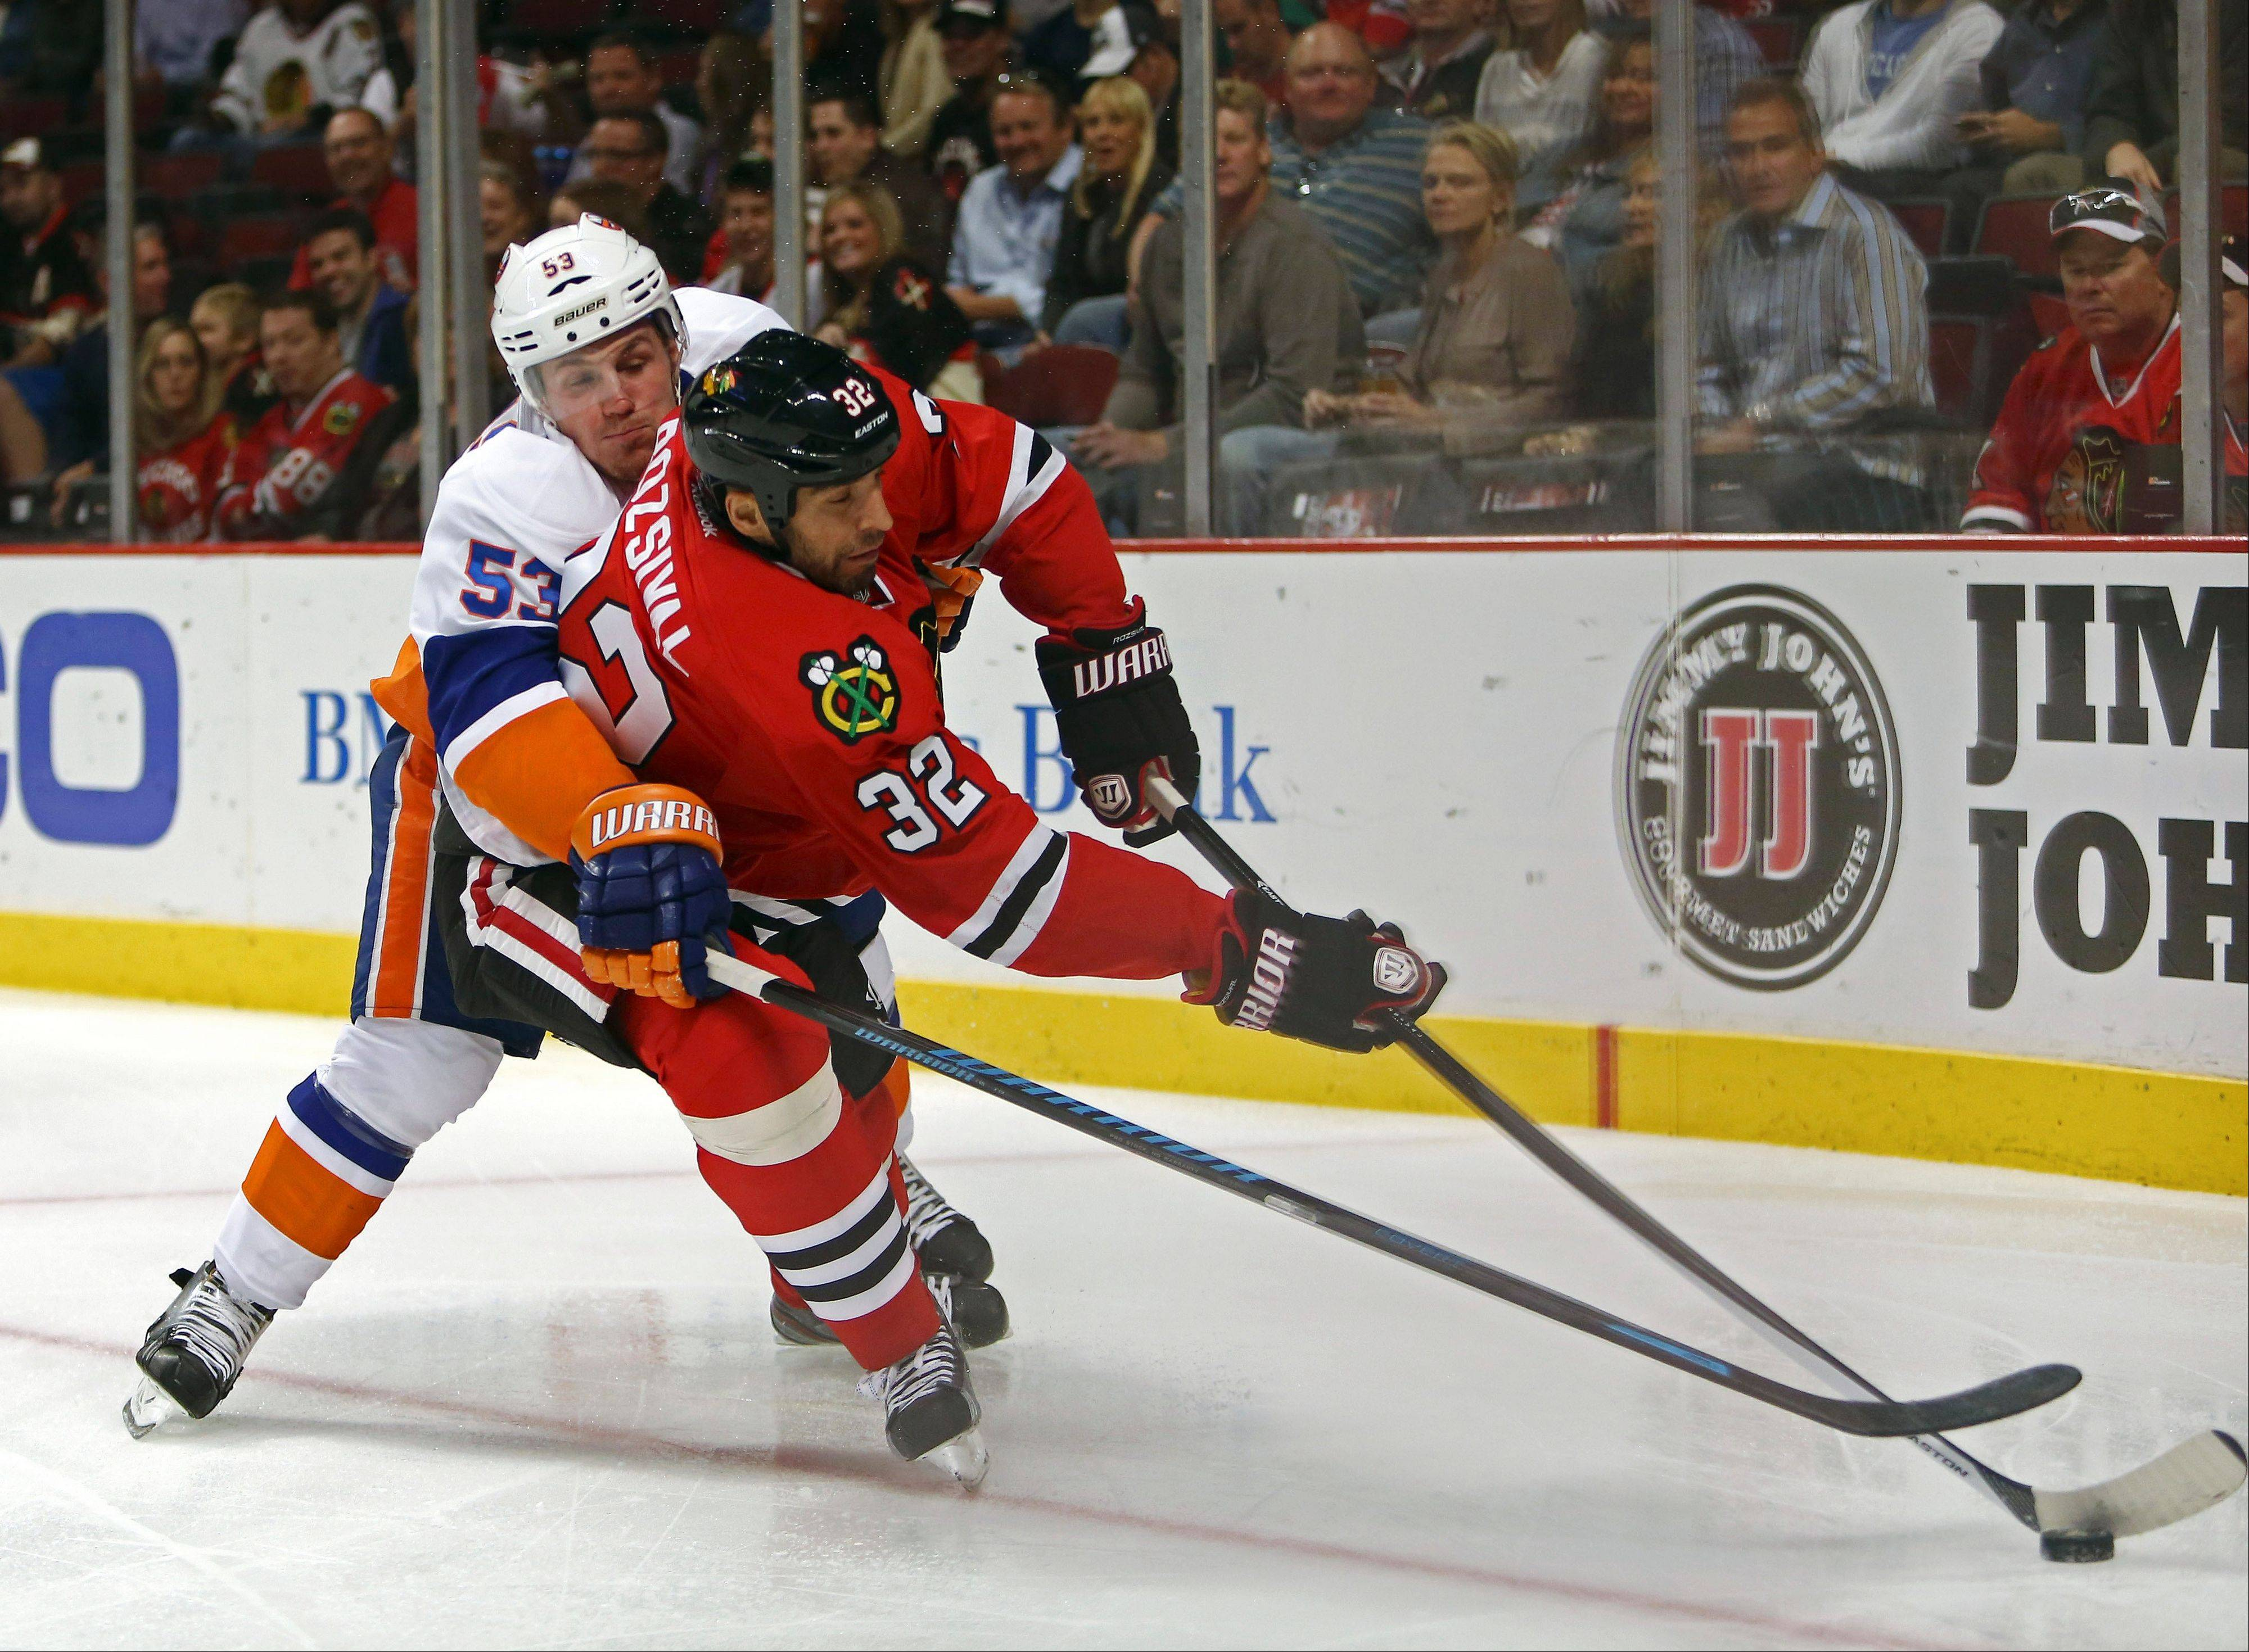 New York Islanders' Casey Cizikas tries to poke the puck away from Chicago Blackhawks' Michal Rosival during the first period of an NHL hockey game in Chicago on Friday, Oct. 11, 2013. (AP Photo/Charles Cherney)